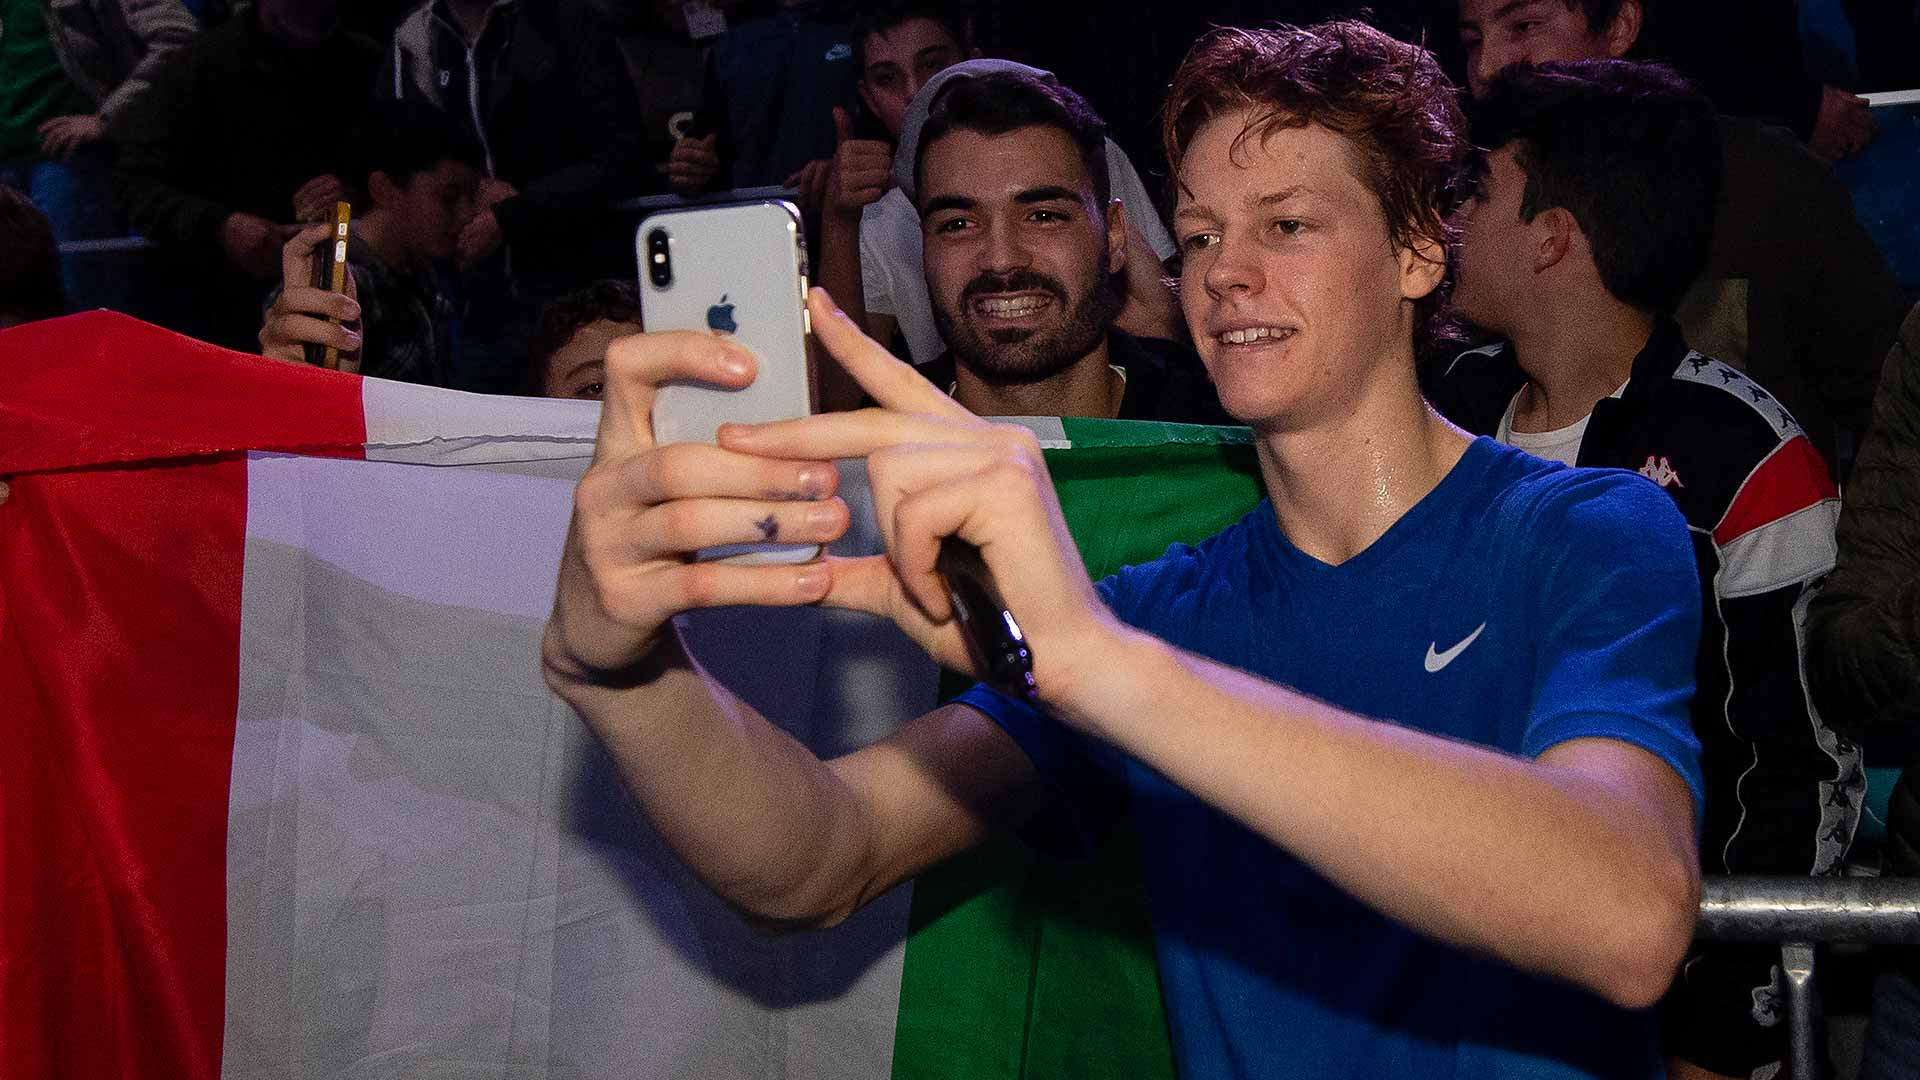 Italy's Jannik Sinner at the 2019 Next Gen ATP Finals in Milan